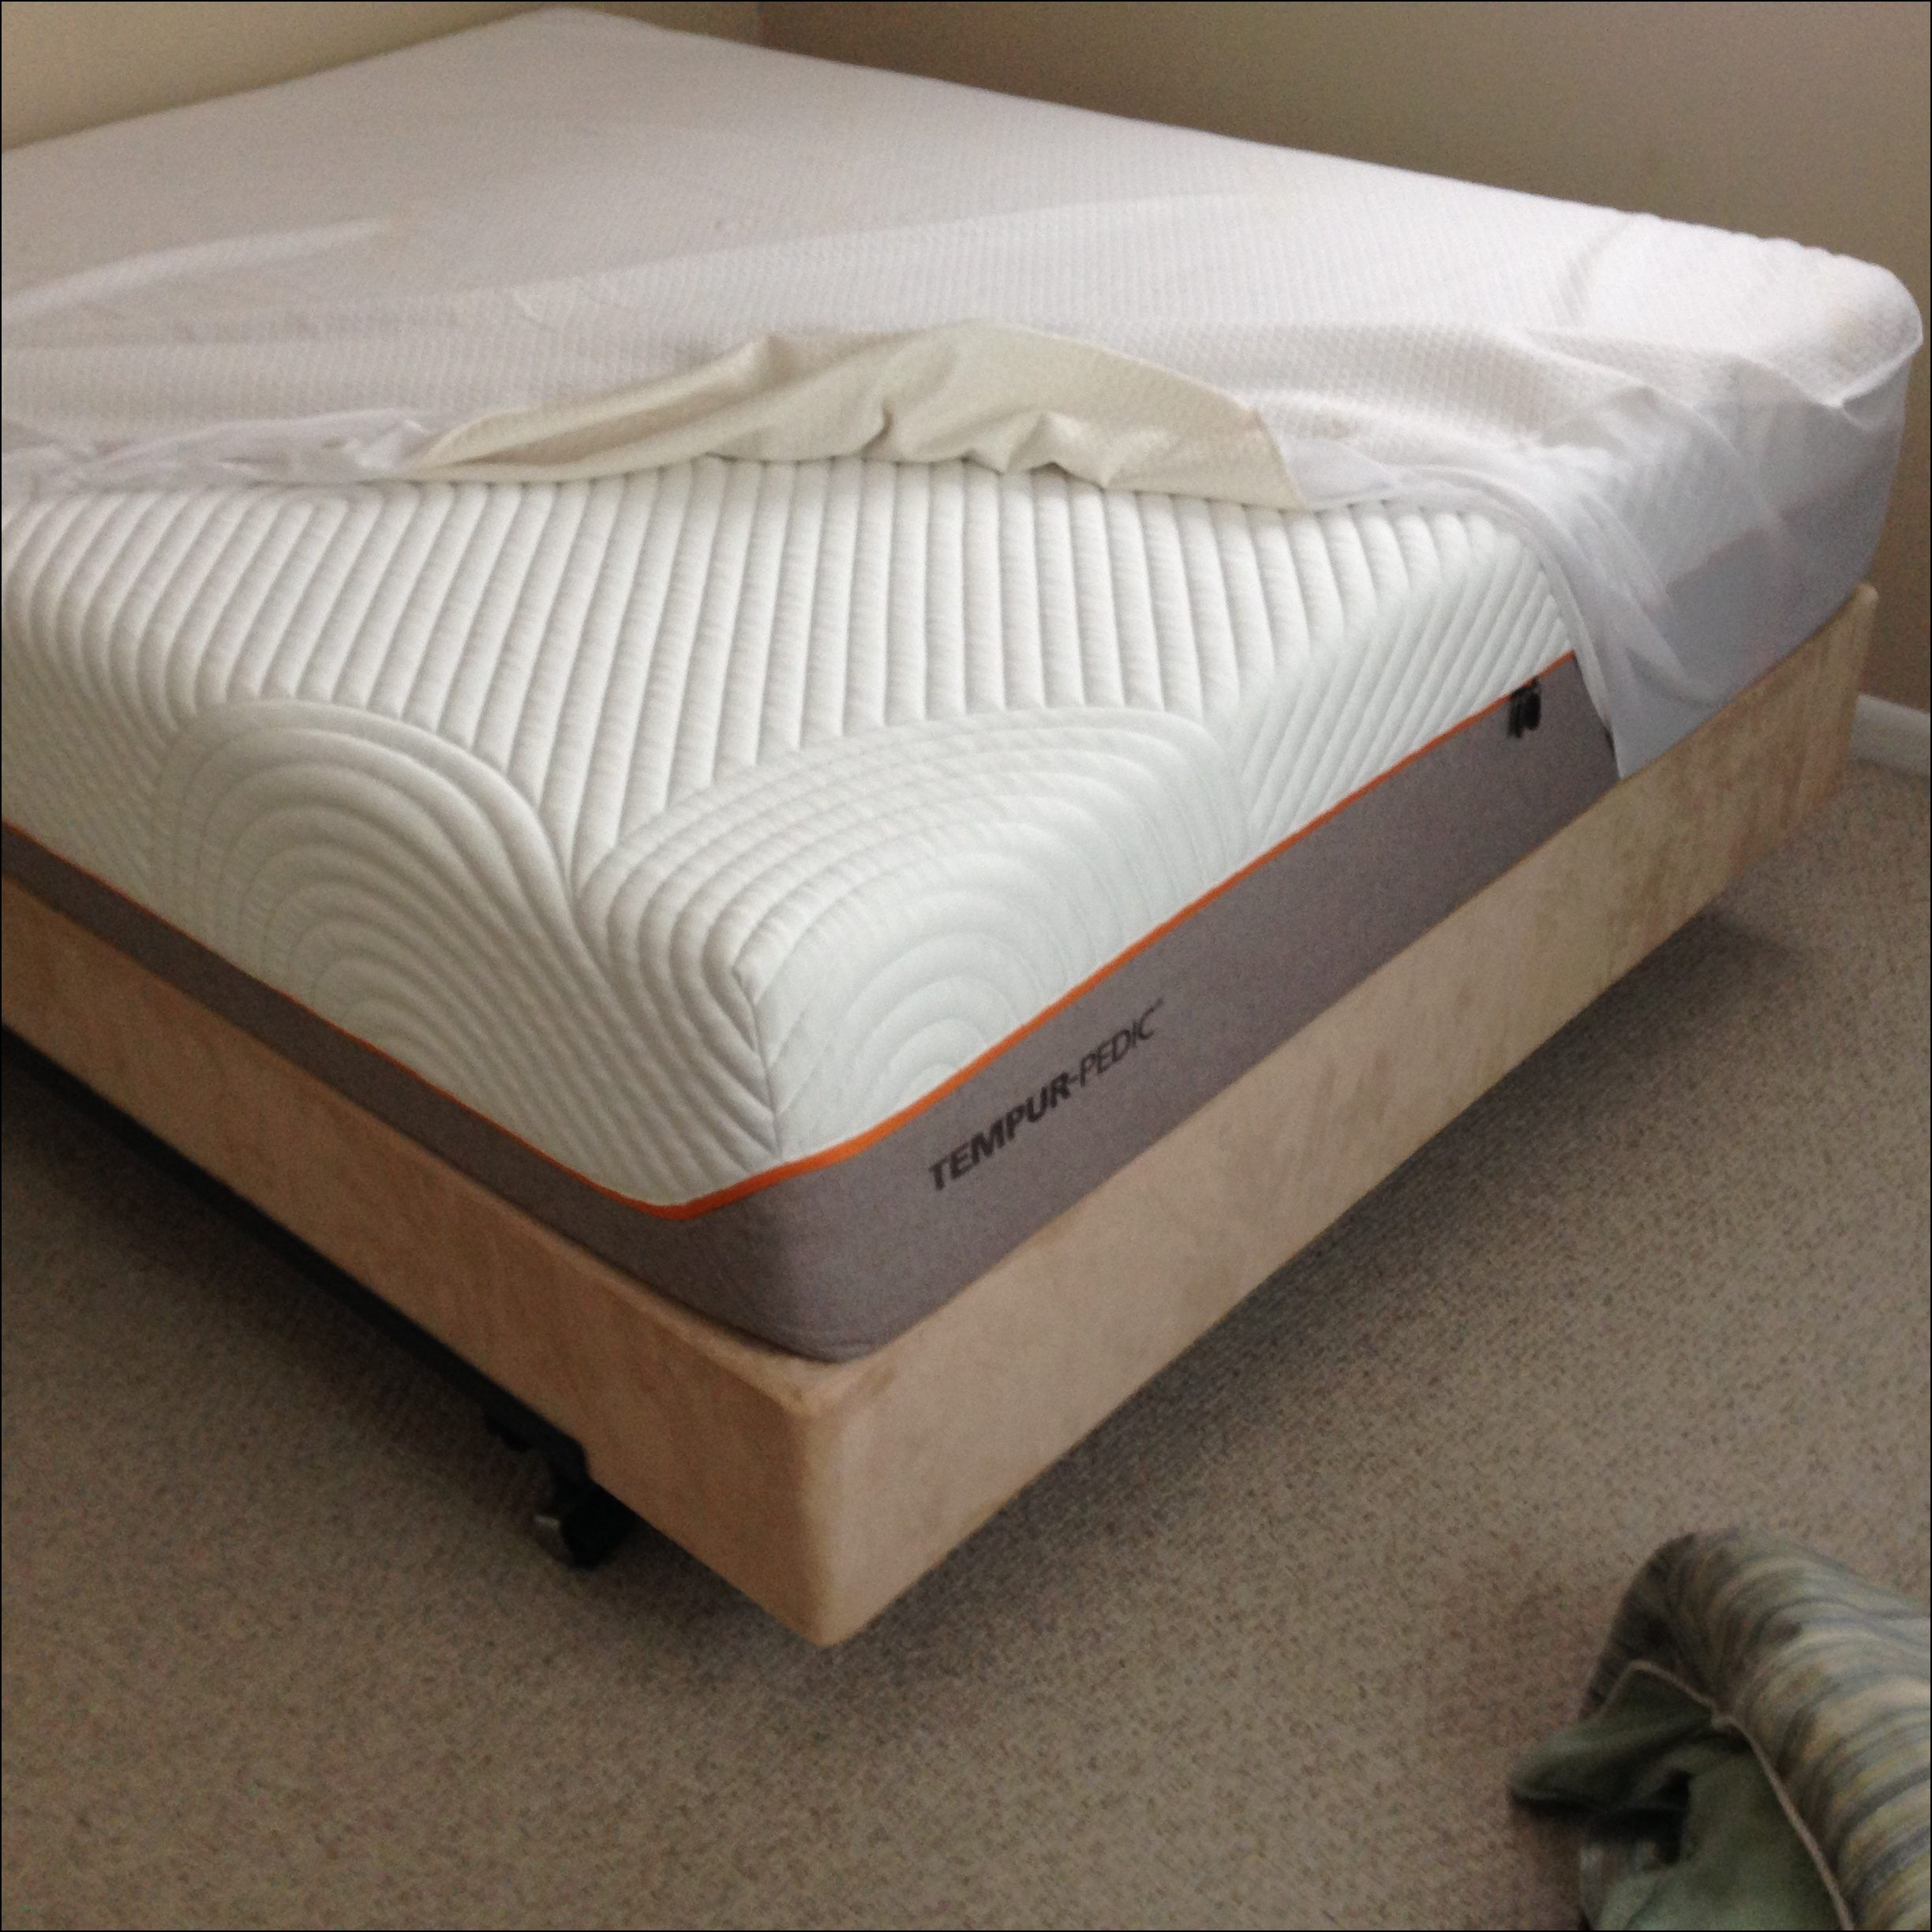 Tempur beds and mattresses mattress ideas pinterest mattress